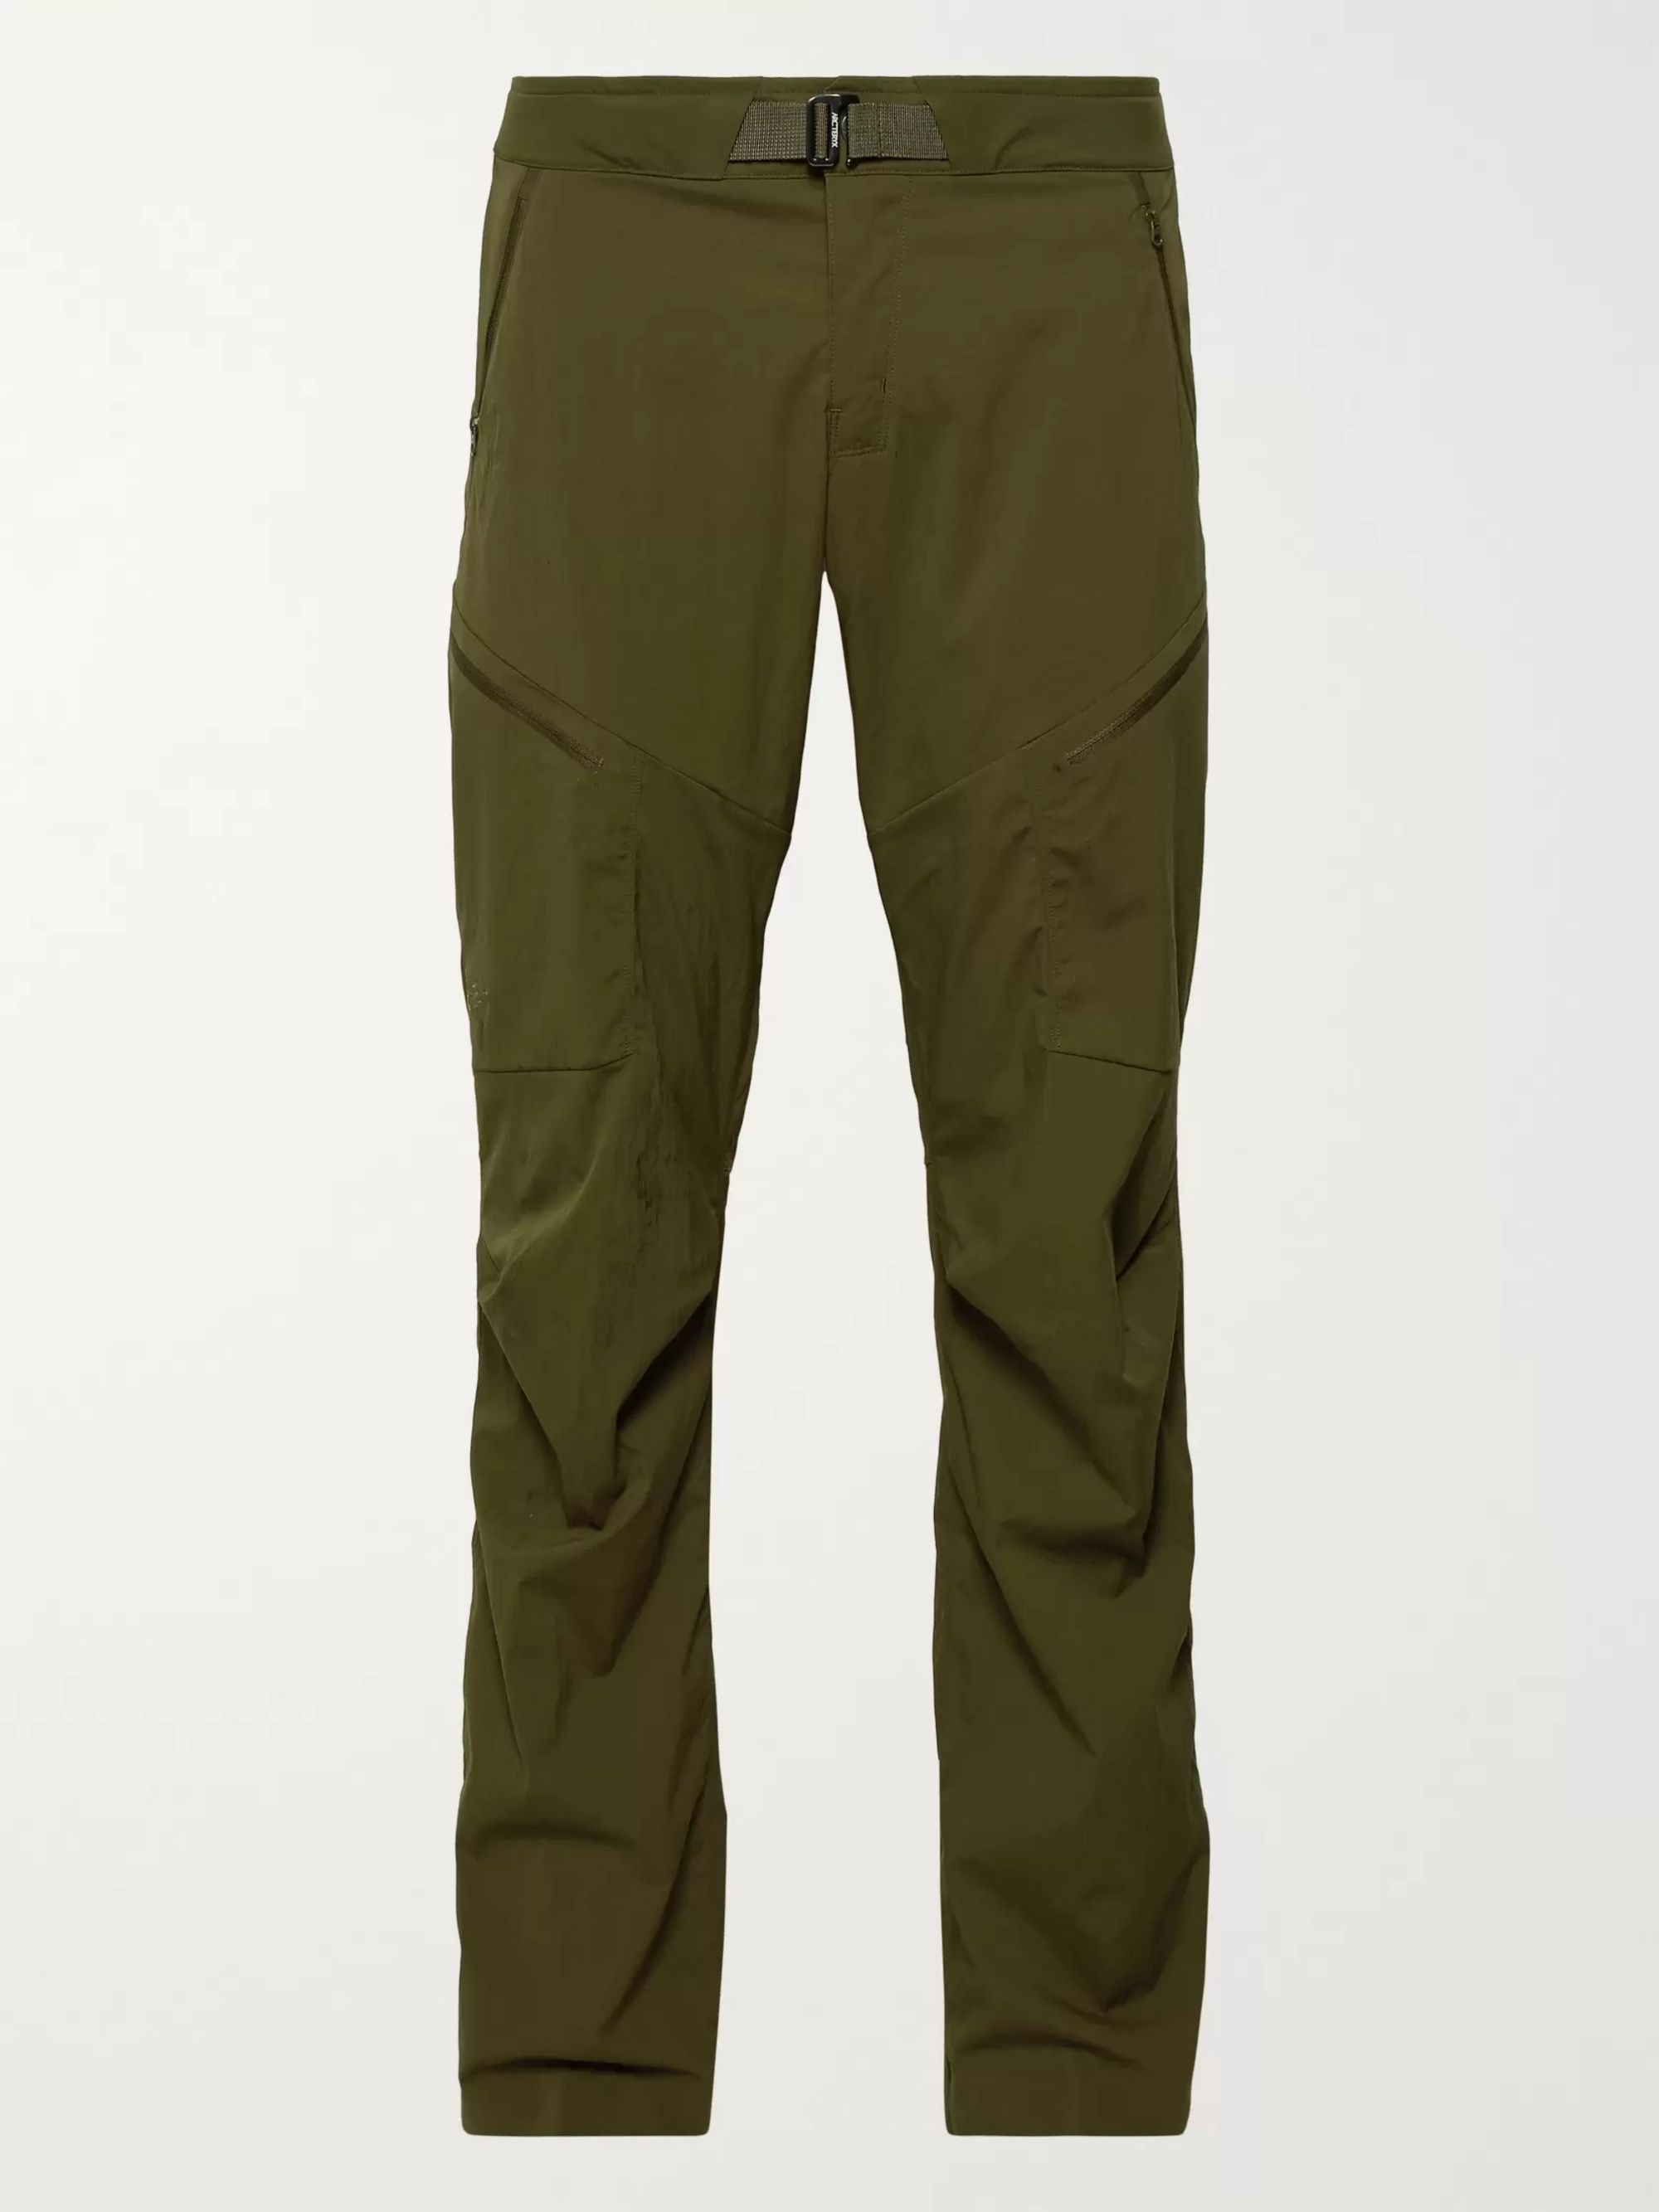 Arc'teryx Palisade TerraTex Trousers